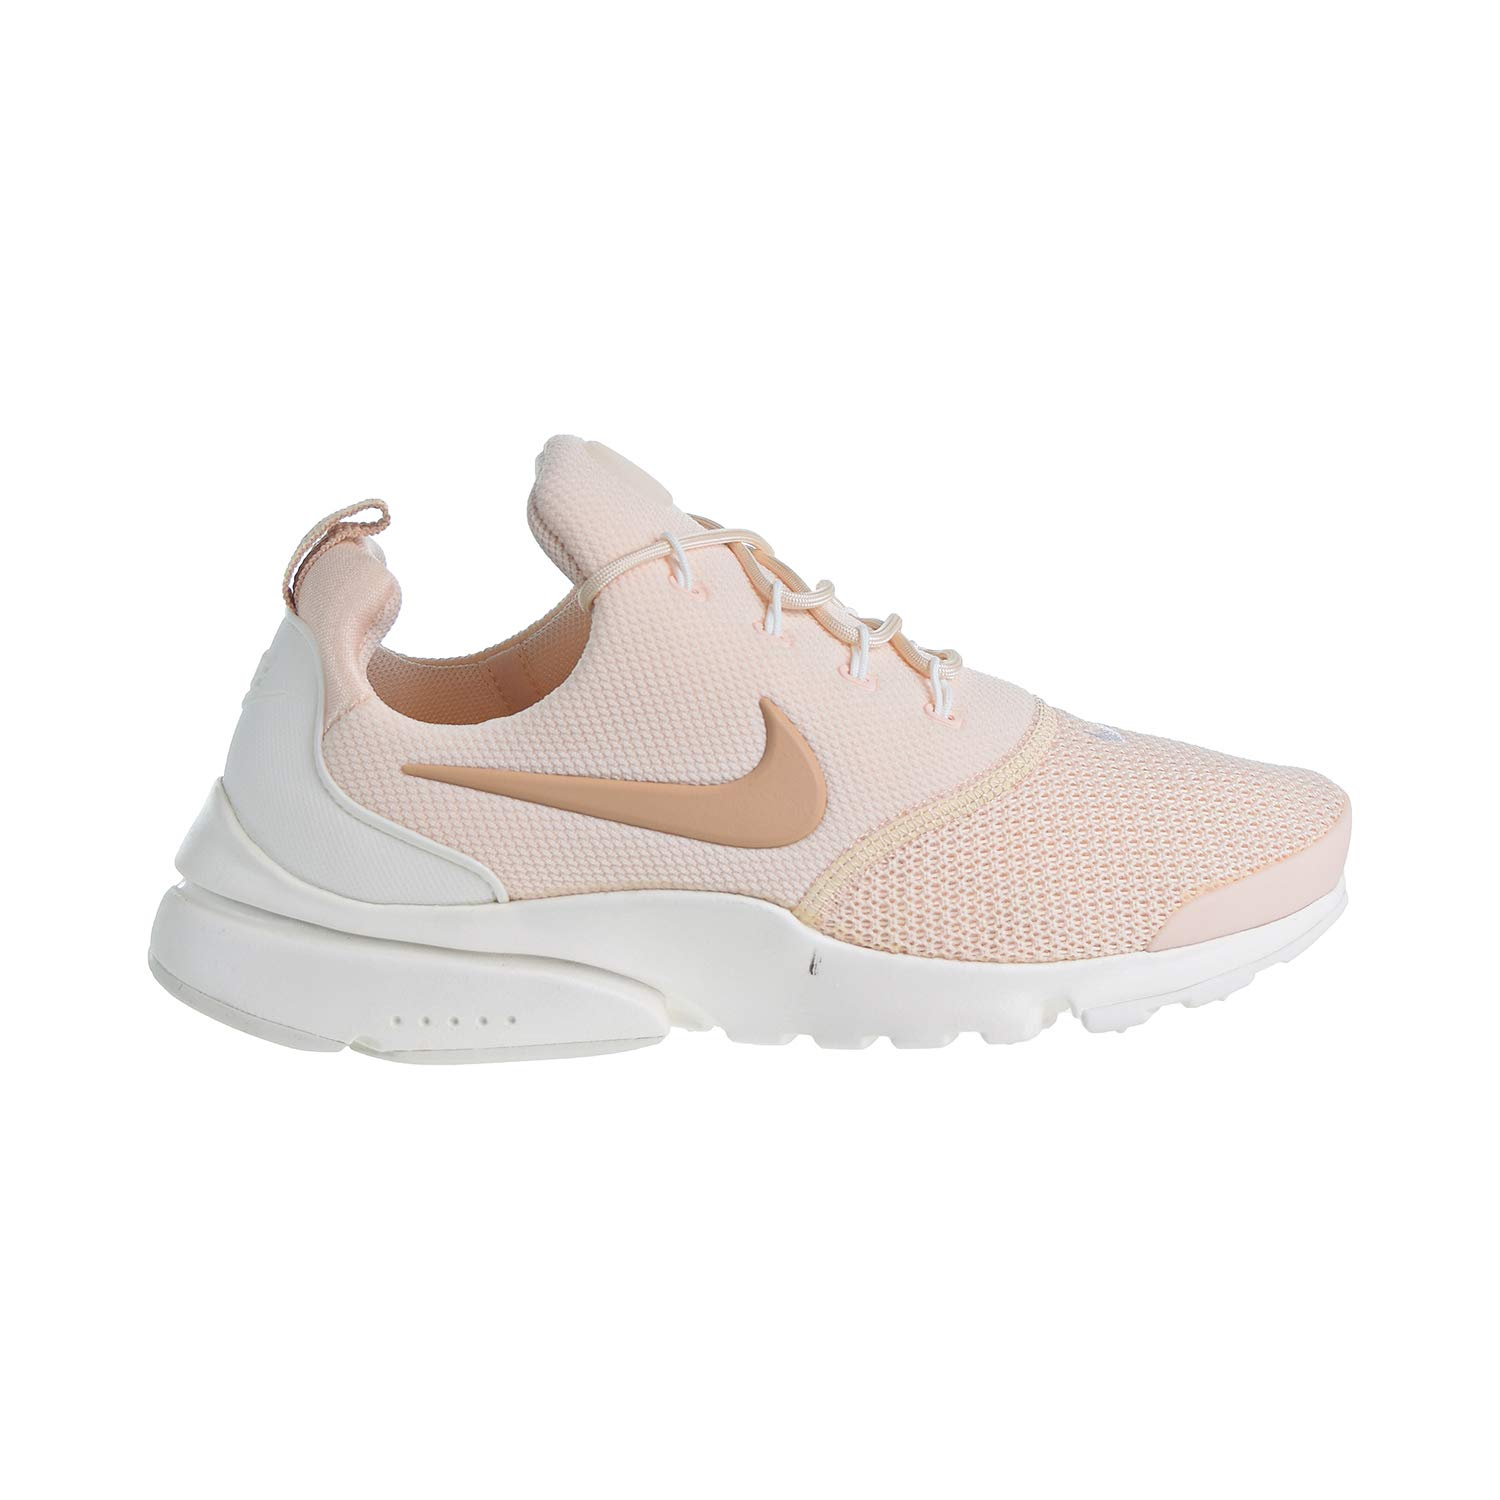 code promo e9b12 e968b Nike Air Presto Fly Women's Shoes Guava Ice/Bio Beige 910569-800 (7.5 B(M)  US)